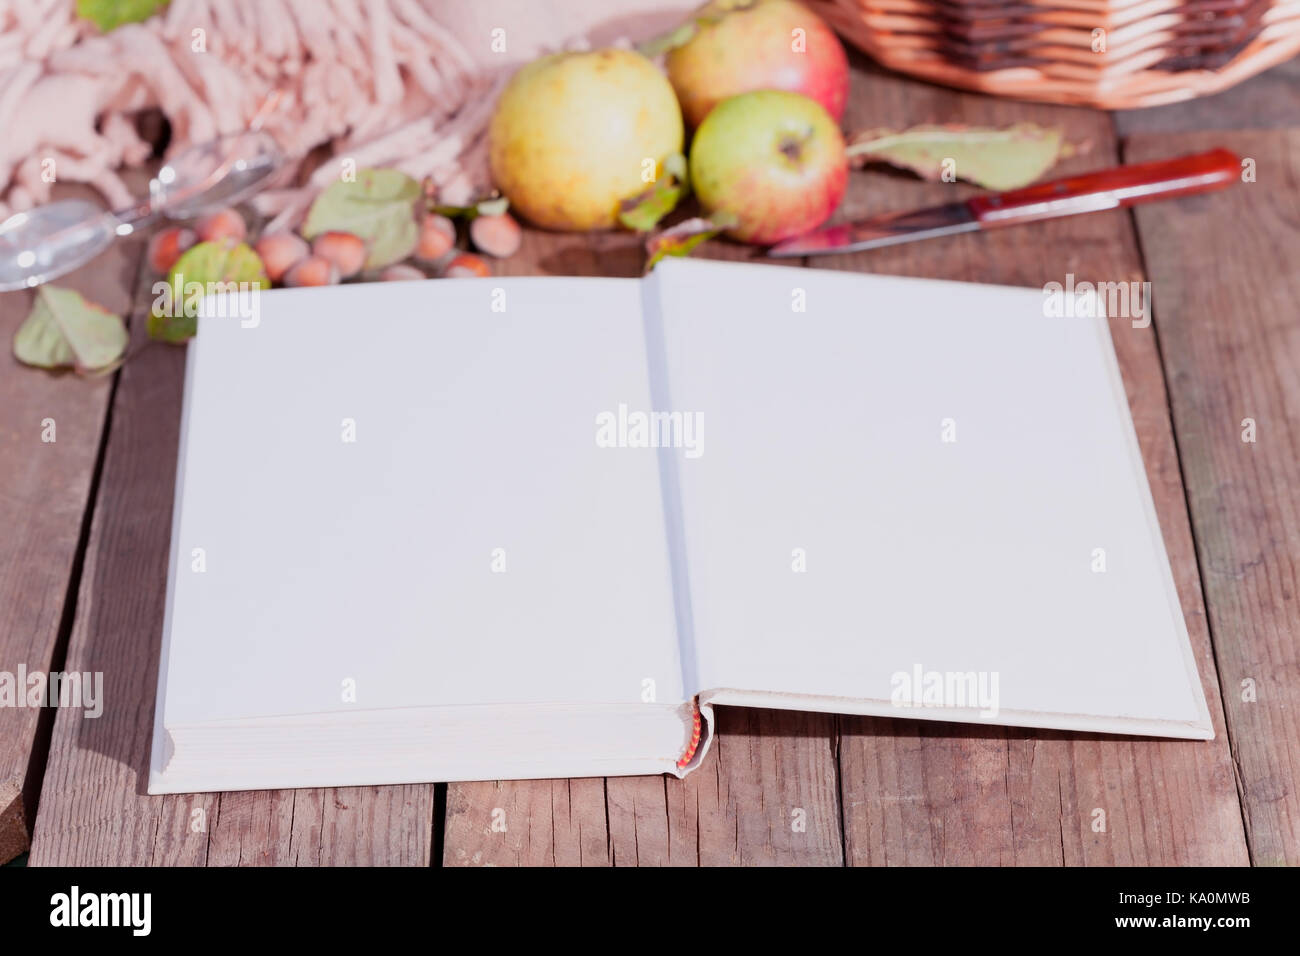 Books on do it yourself stock photos books on do it yourself stock open book on a wooden table with apples on an autumnal day stock image solutioingenieria Images